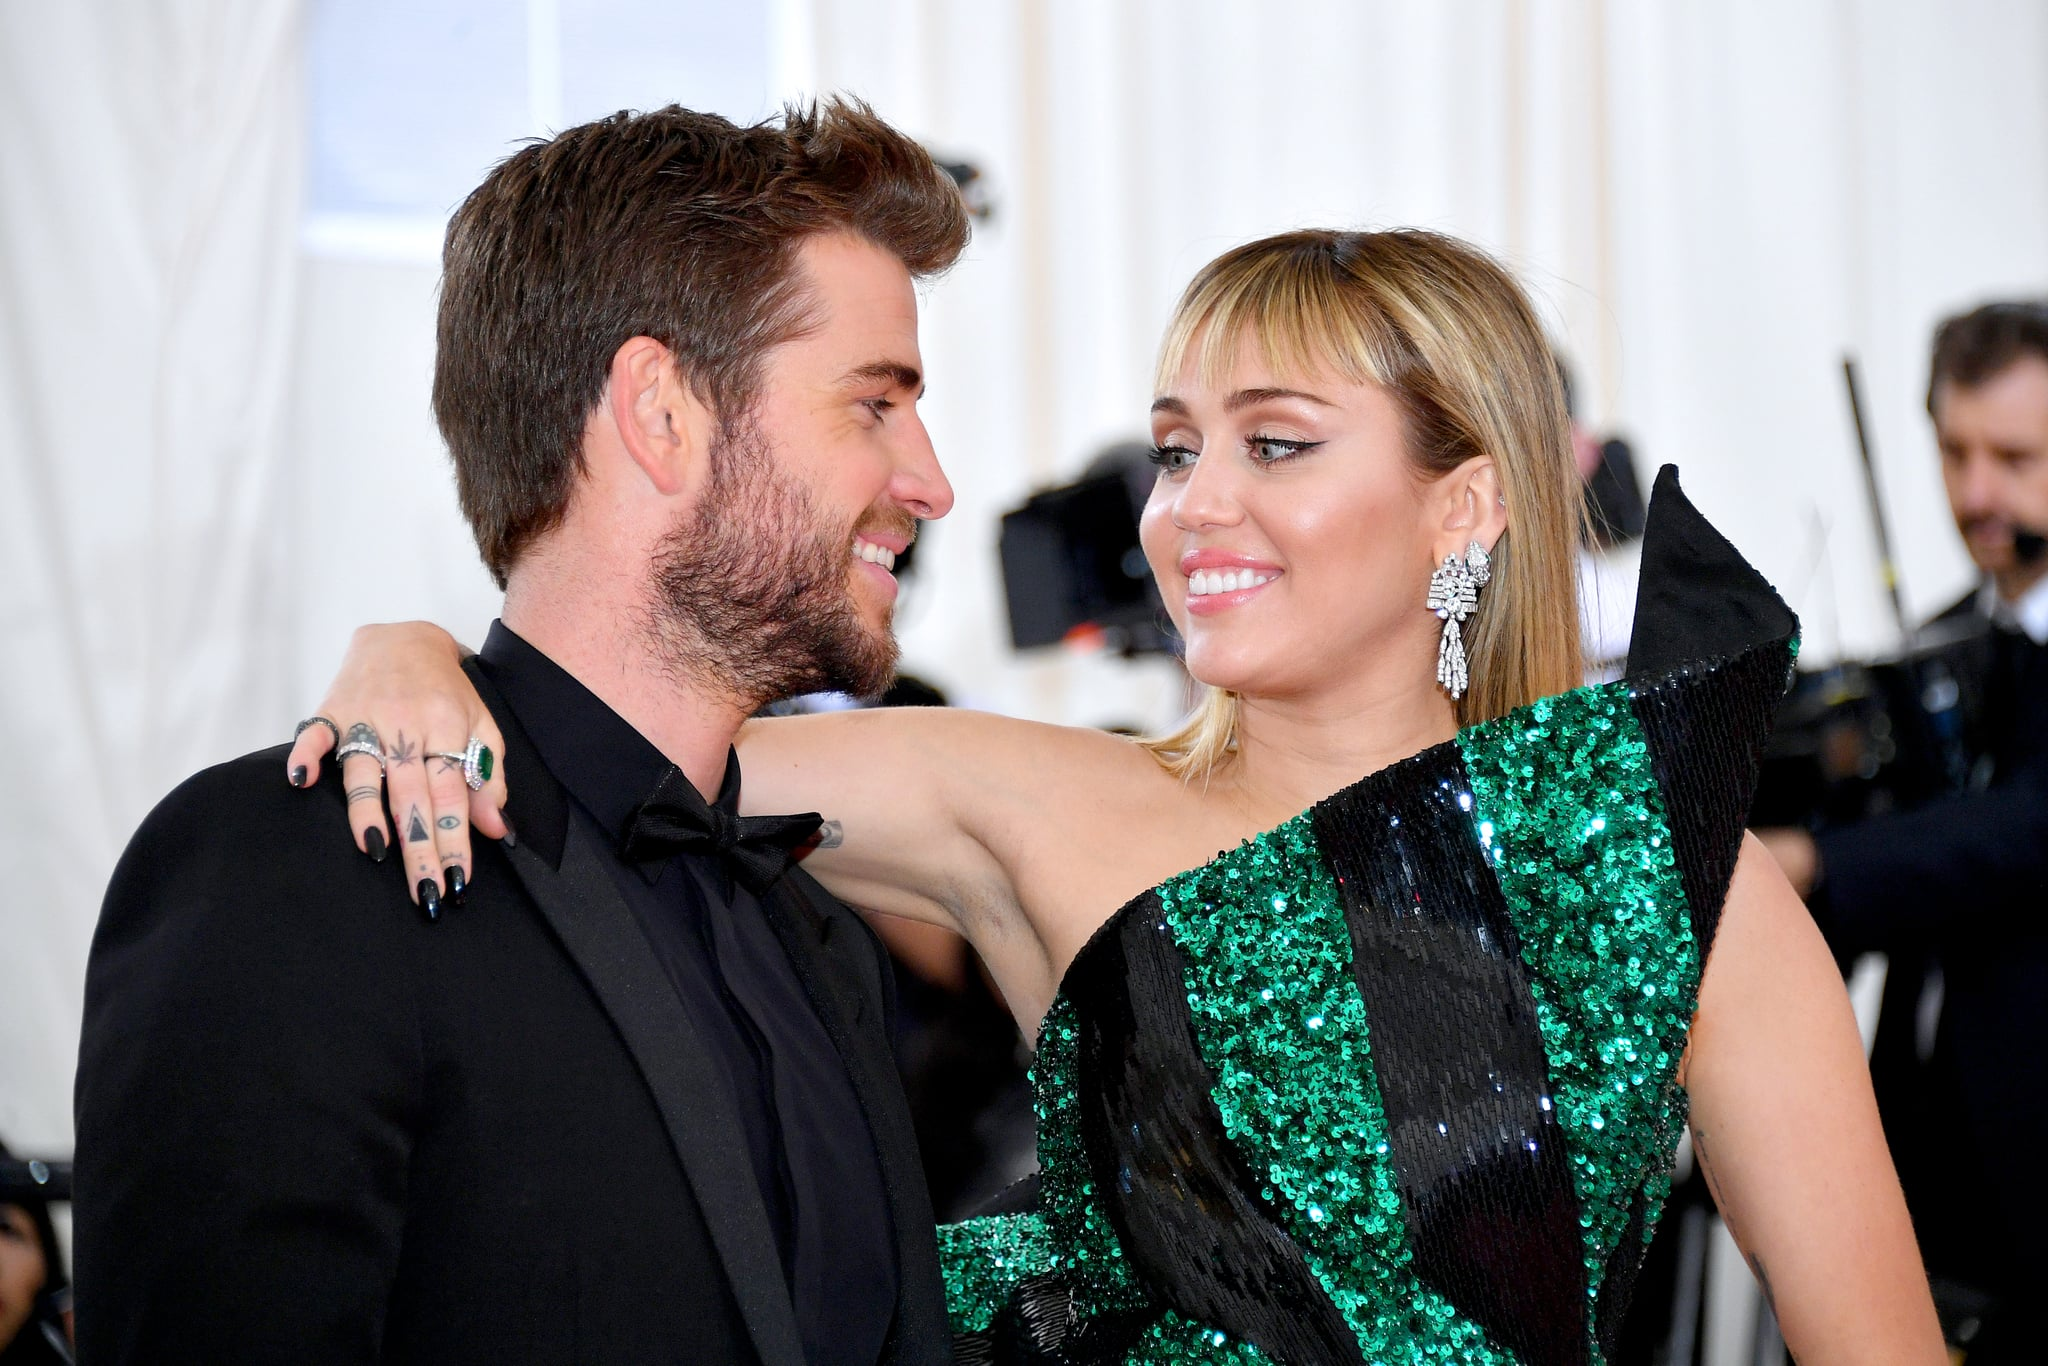 NEW YORK, NEW YORK - MAY 06: Liam Hemsworth and Miley Cyrus attend The 2019 Met Gala Celebrating Camp: Notes on Fashion at Metropolitan Museum of Art on May 06, 2019 in New York City. (Photo by Dia Dipasupil/FilmMagic)